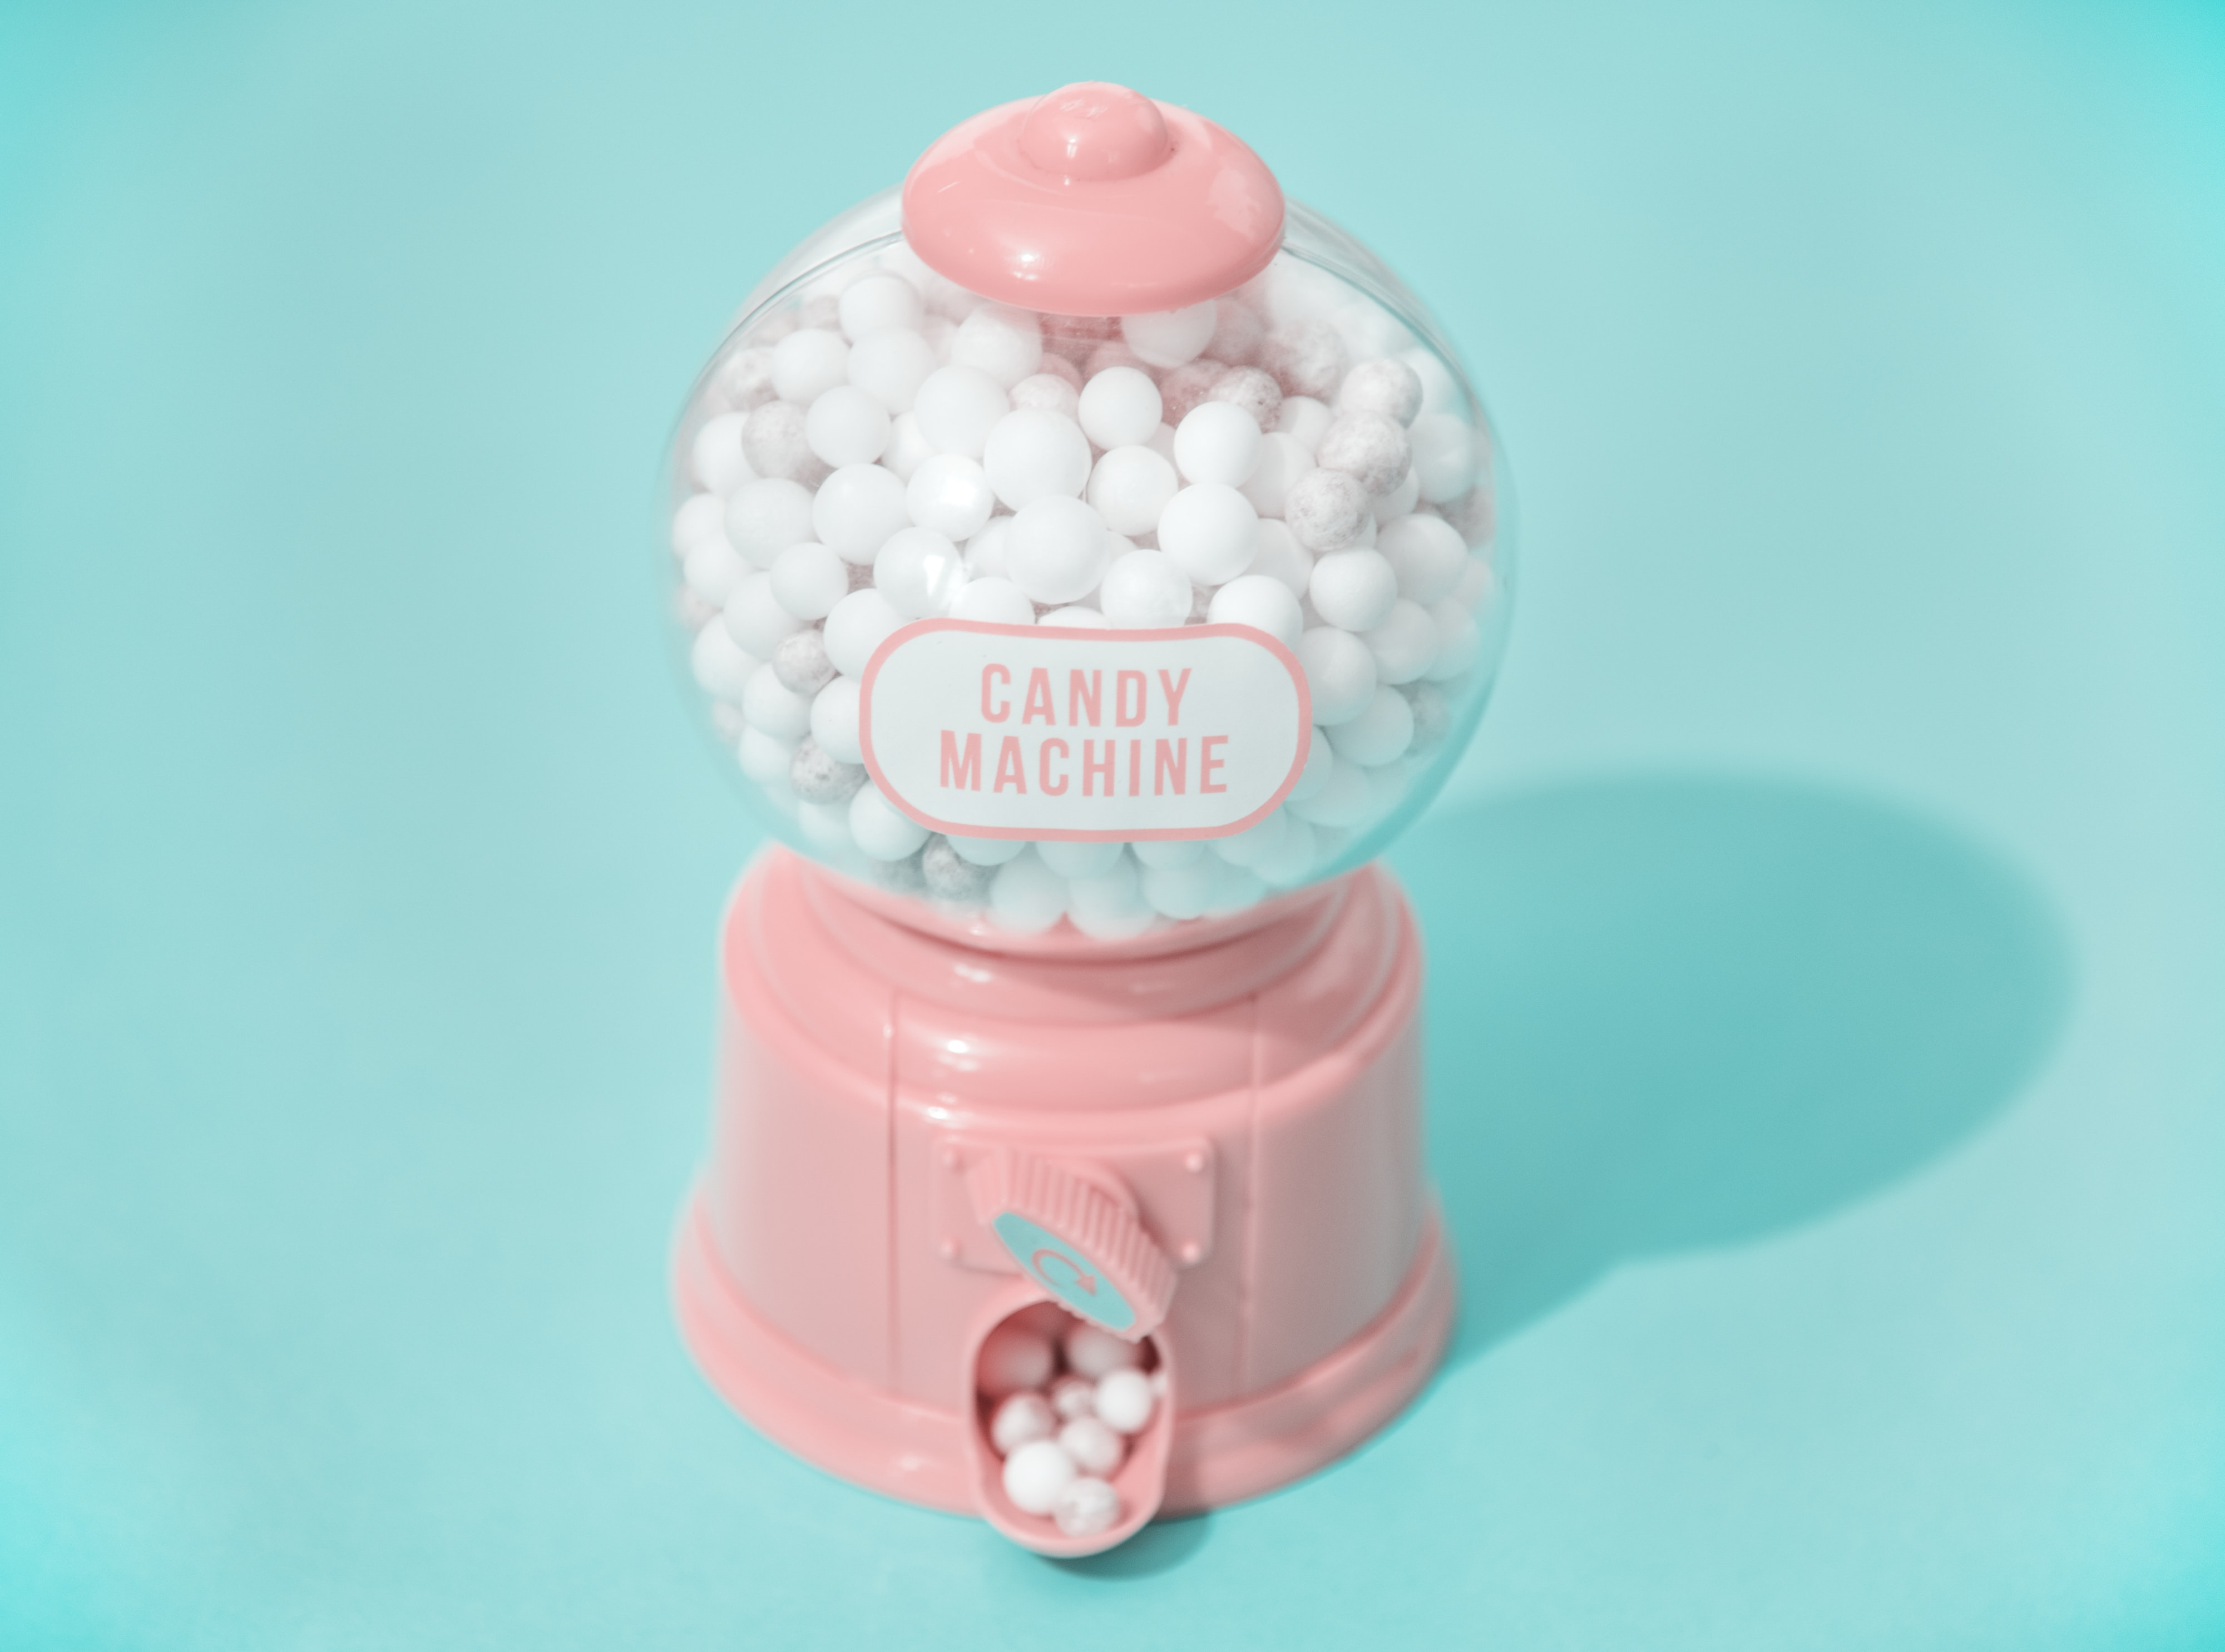 candy machine dispensing acandy